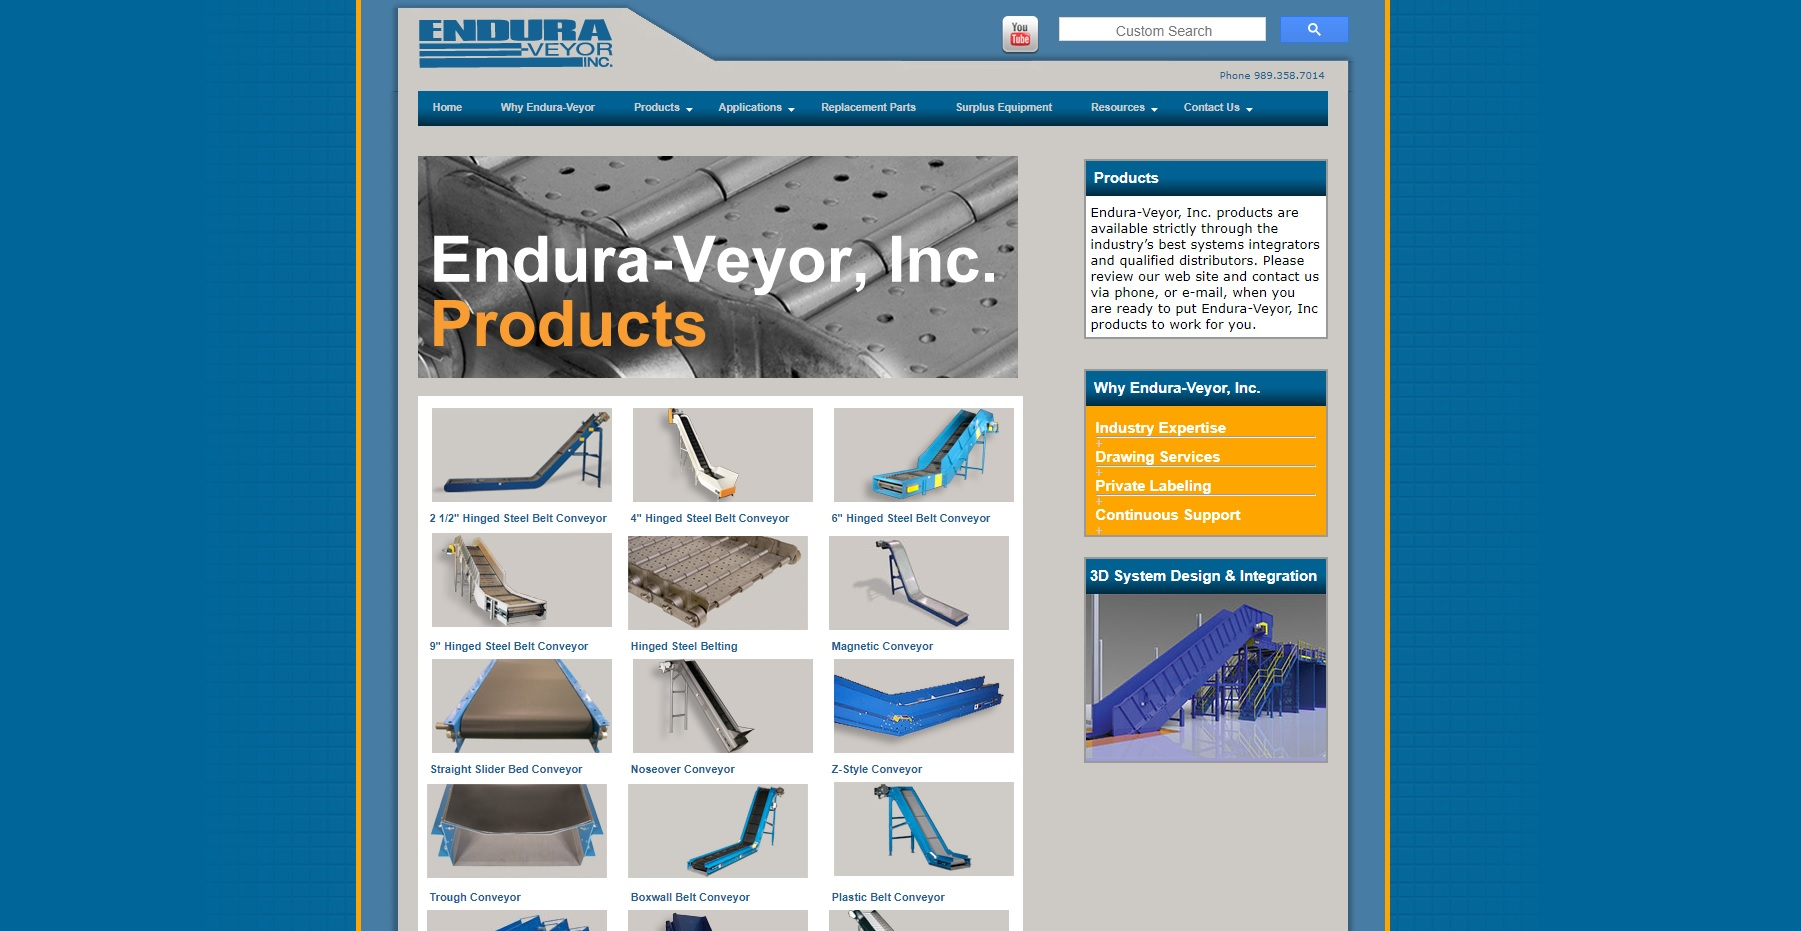 Endura-Veyor, Inc.